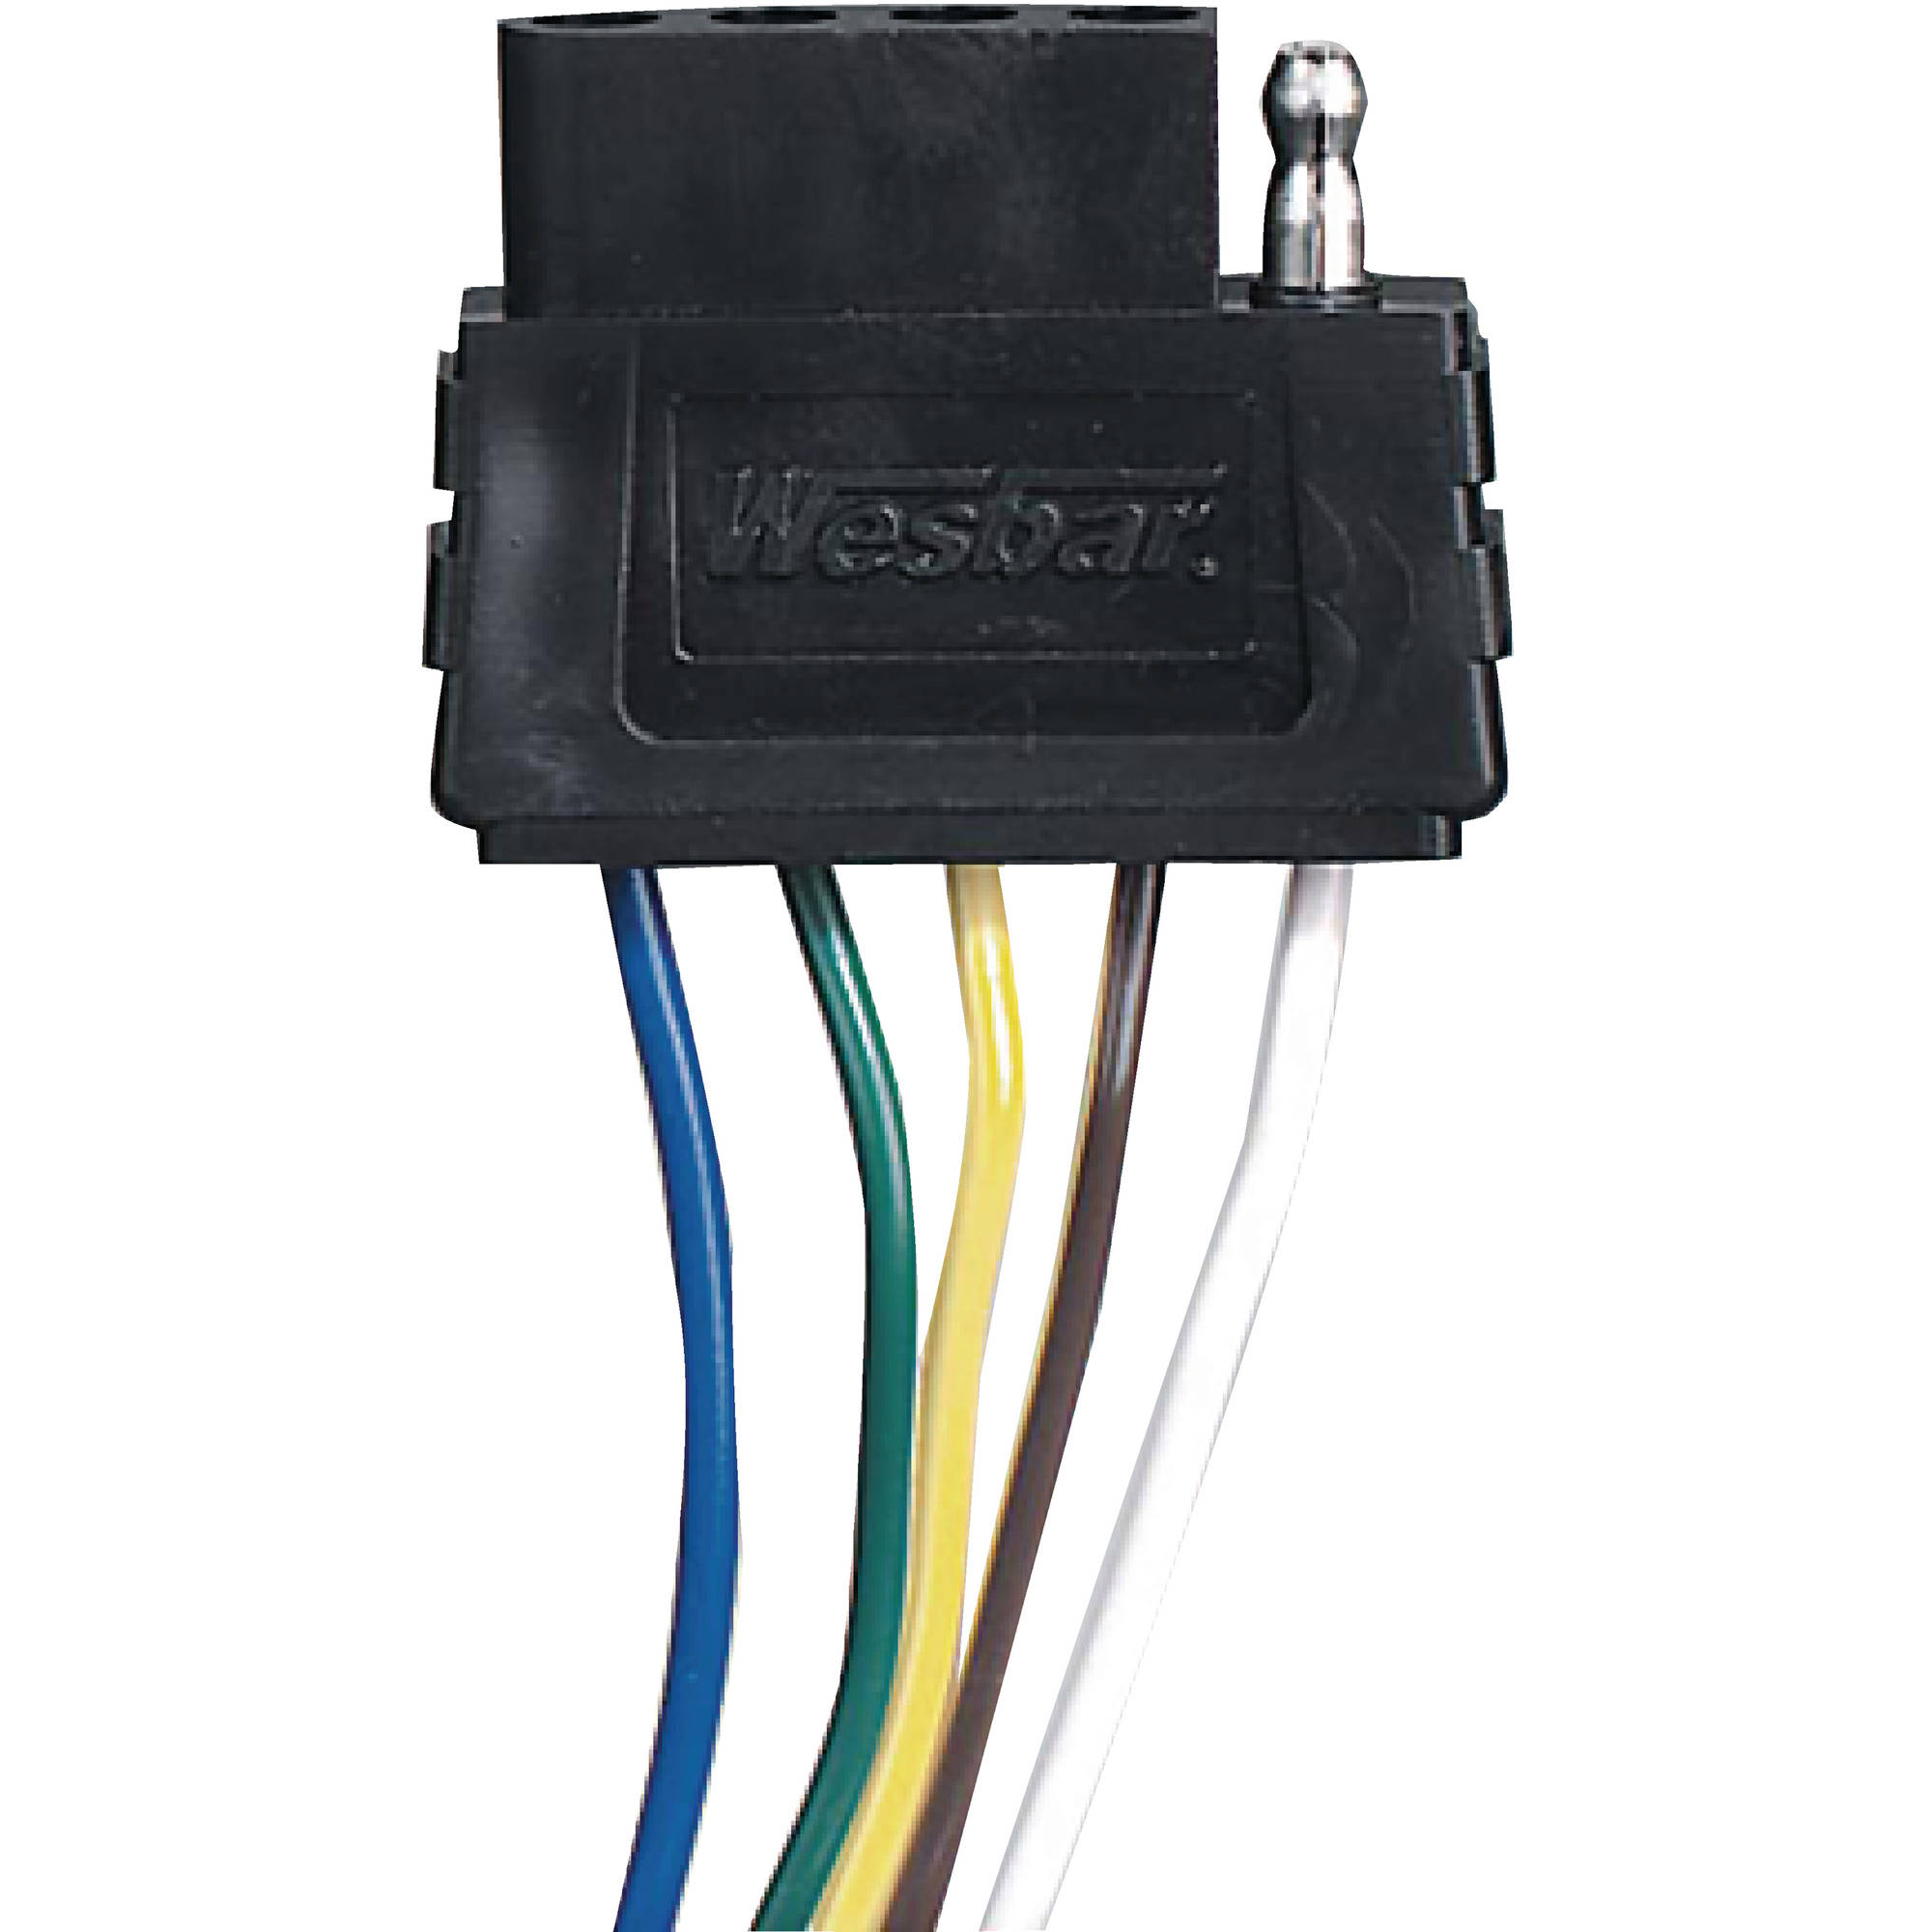 Wesbar 6 Pin Wiring Harness Diagram Automotive Electricalwesbar 707273 5 Way Trailer Light Wire 6u0027 Trunk Connector